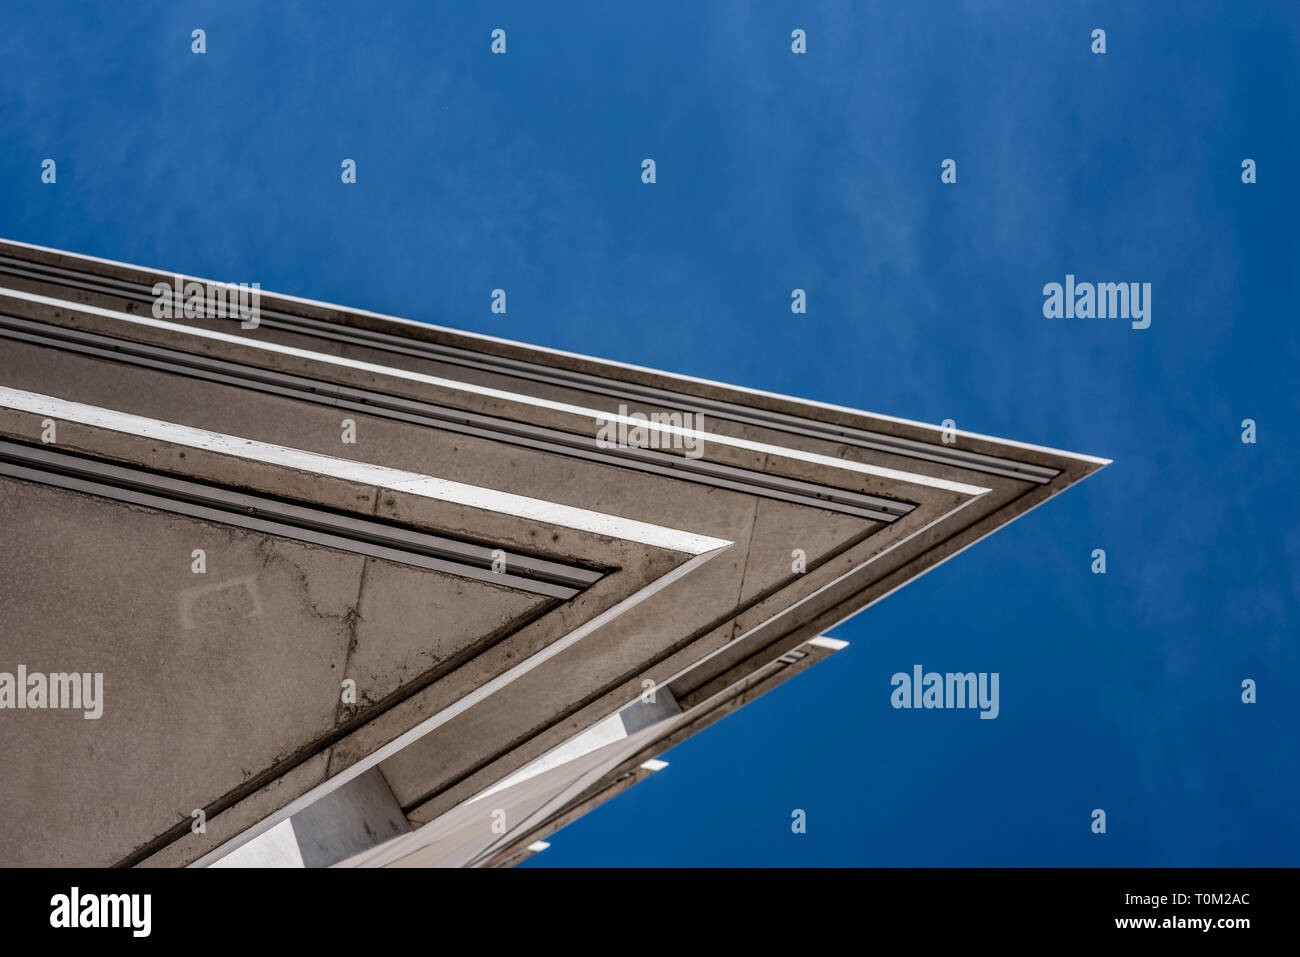 futuristic construction detail with acute-angle roof and balcony, imaginary fin shape - Stock Image